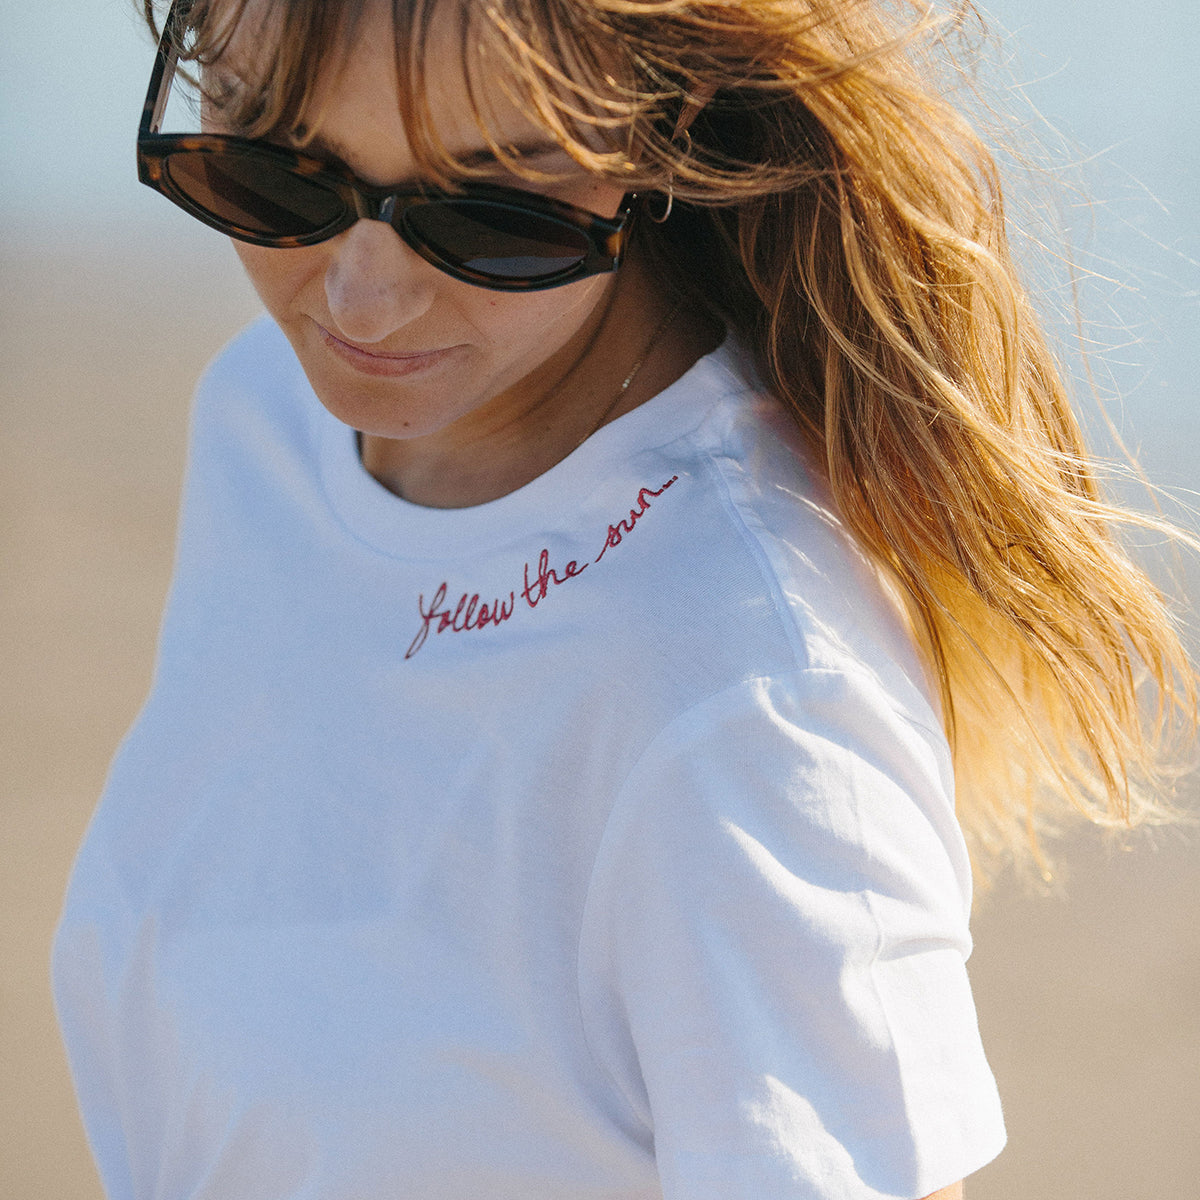 Follow The Sun embroidered tee